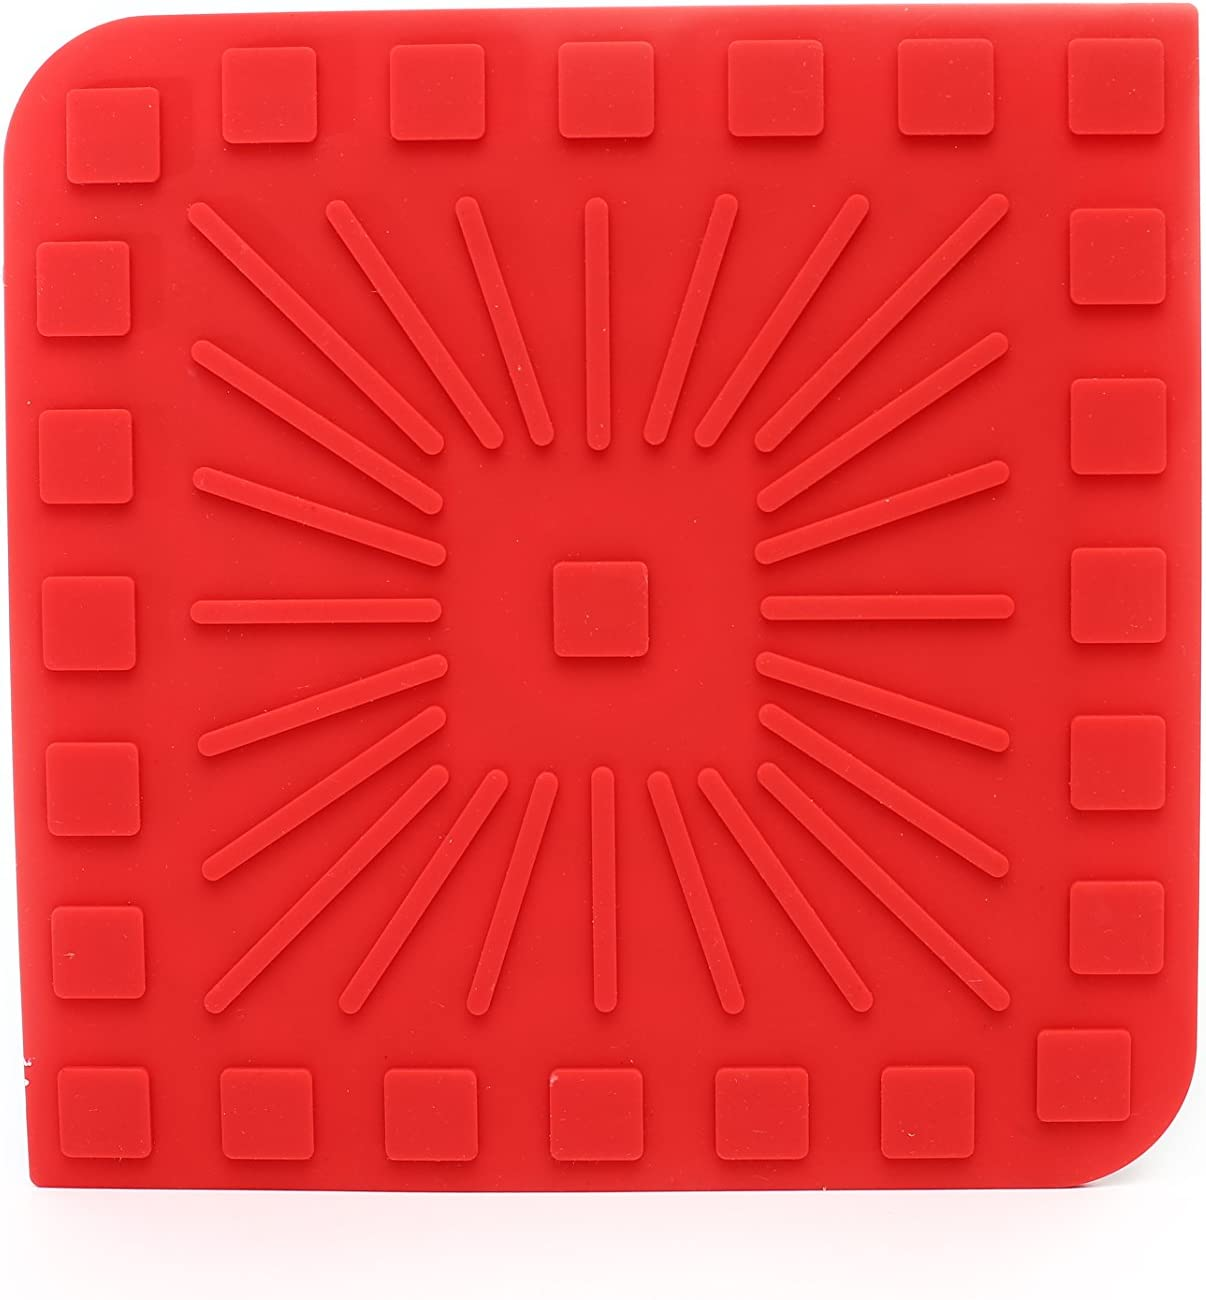 Coaster or Utensil Rest Modgy Silicone Trivet Artist Series-Klimt-The Kiss Easy to Clean Use it as a Hot Pad Heat Releasing Grooved Bottom Durable Non-Slip Heat Resistant